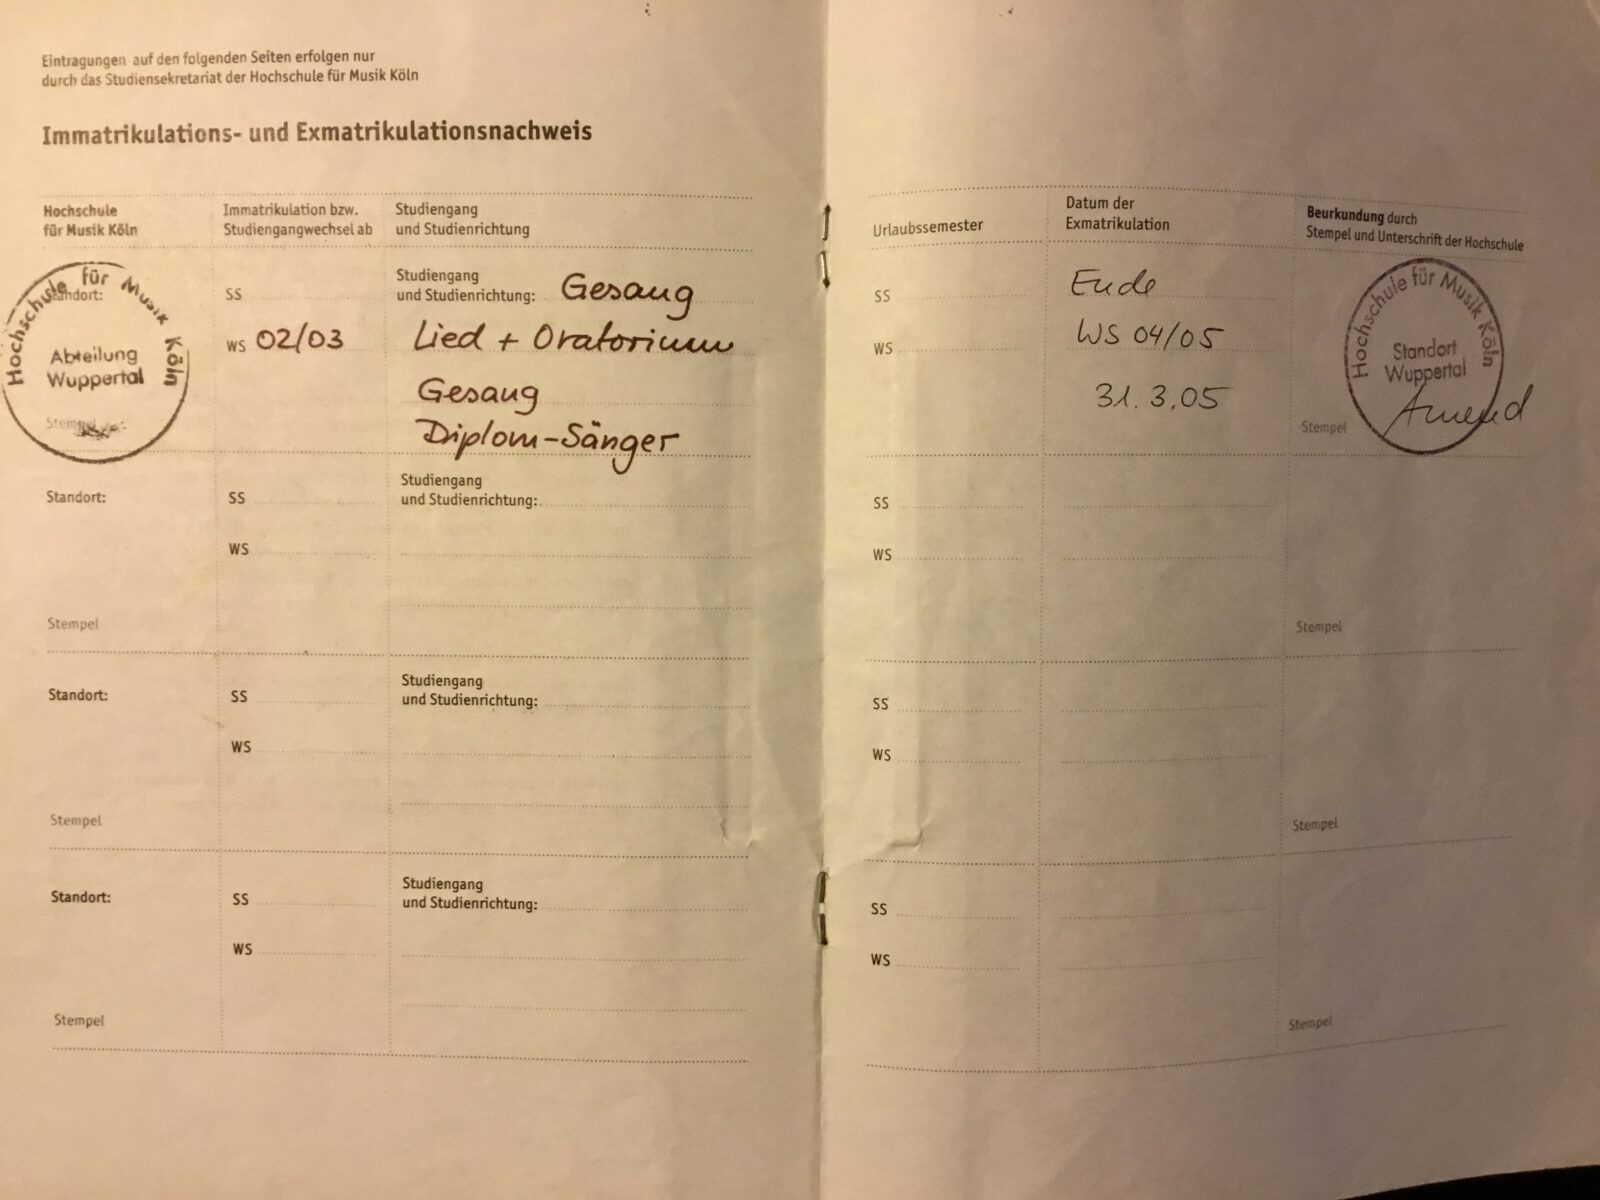 Proof of study on 2.5 years of a 5 year course in singing (Grundstudium)